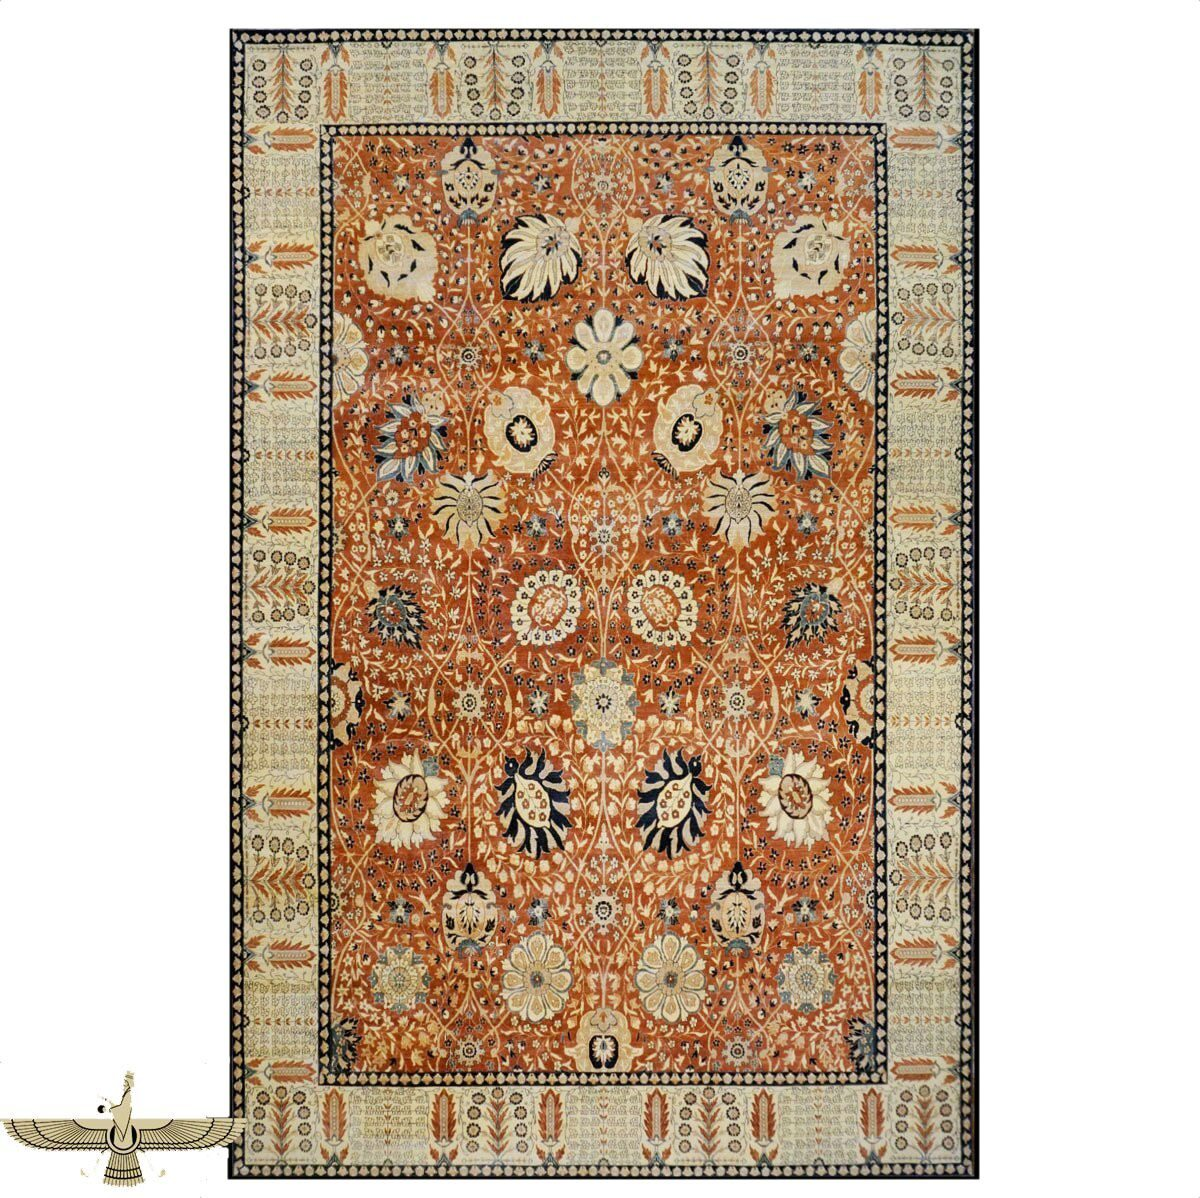 9902816 Persian Tabriz Area Rug from Ashly Fine Rugs